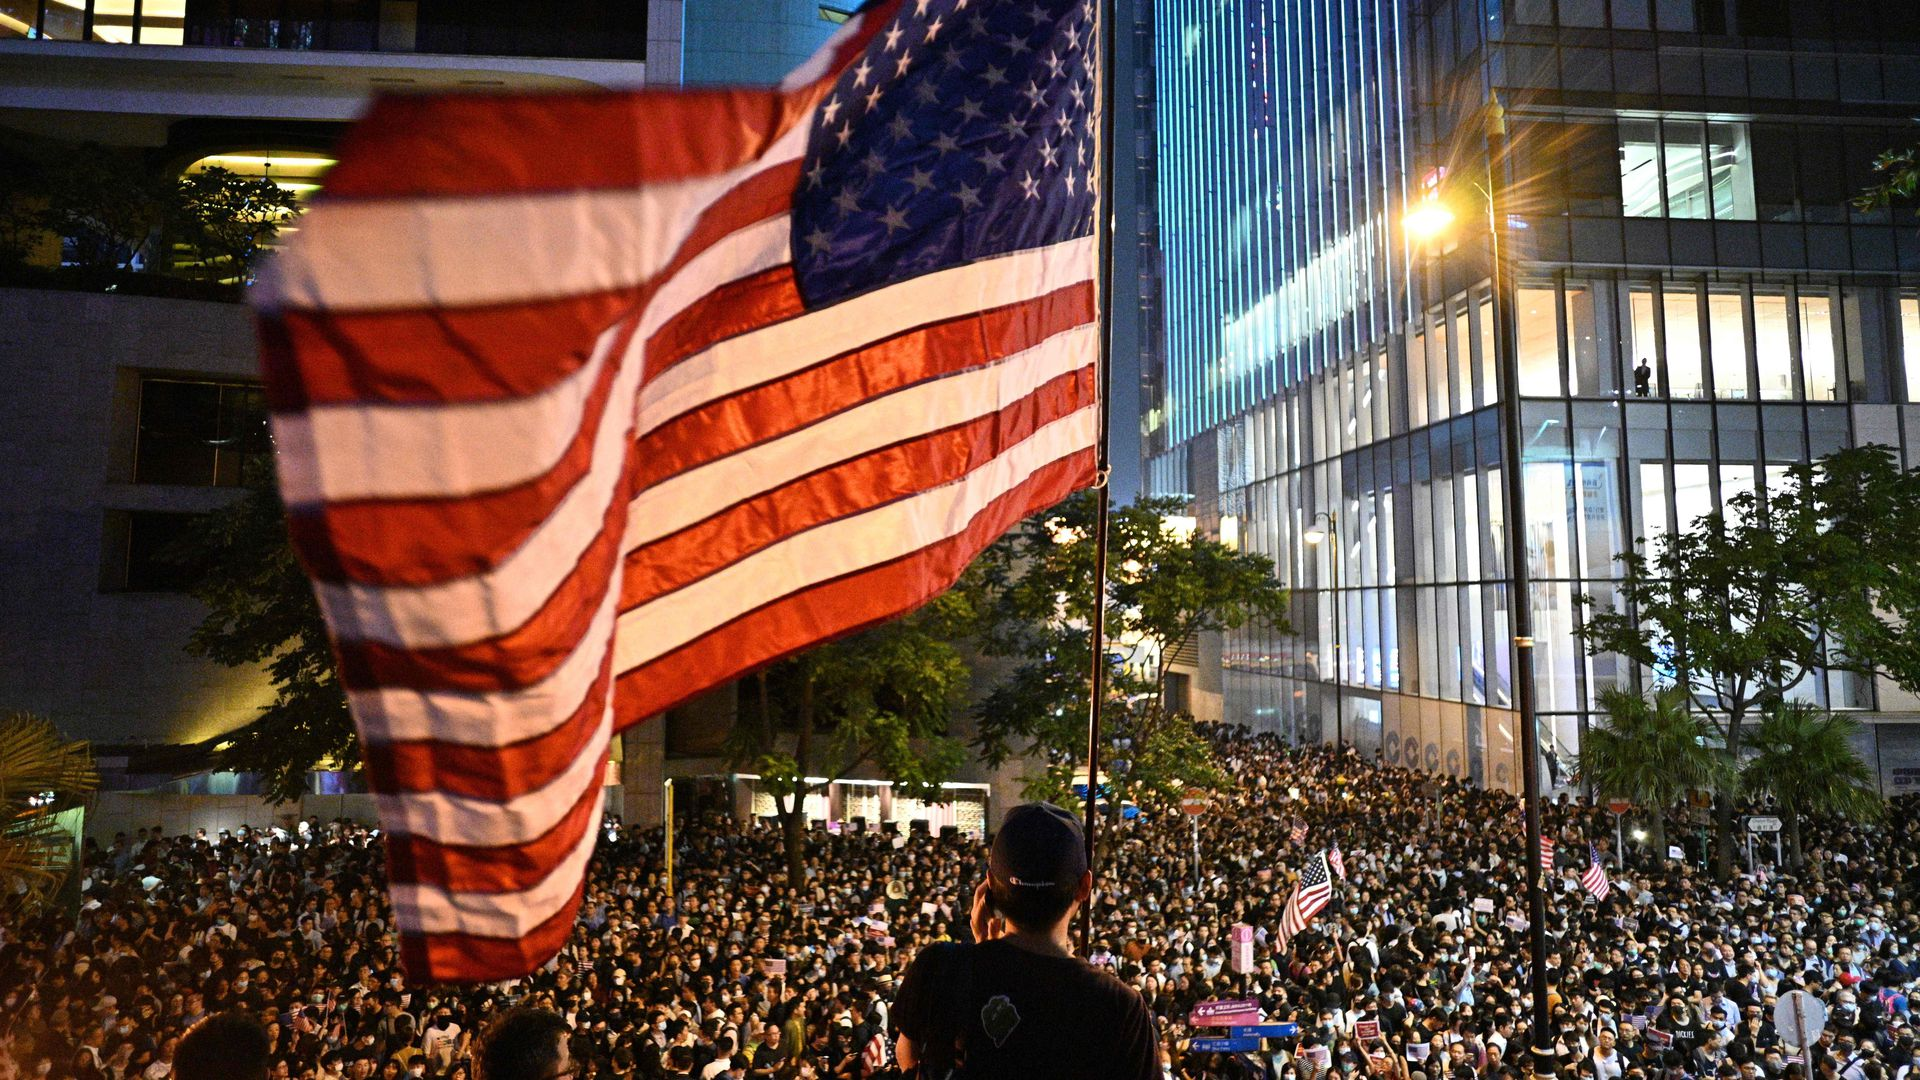 Hong Kong protestors wave US flag